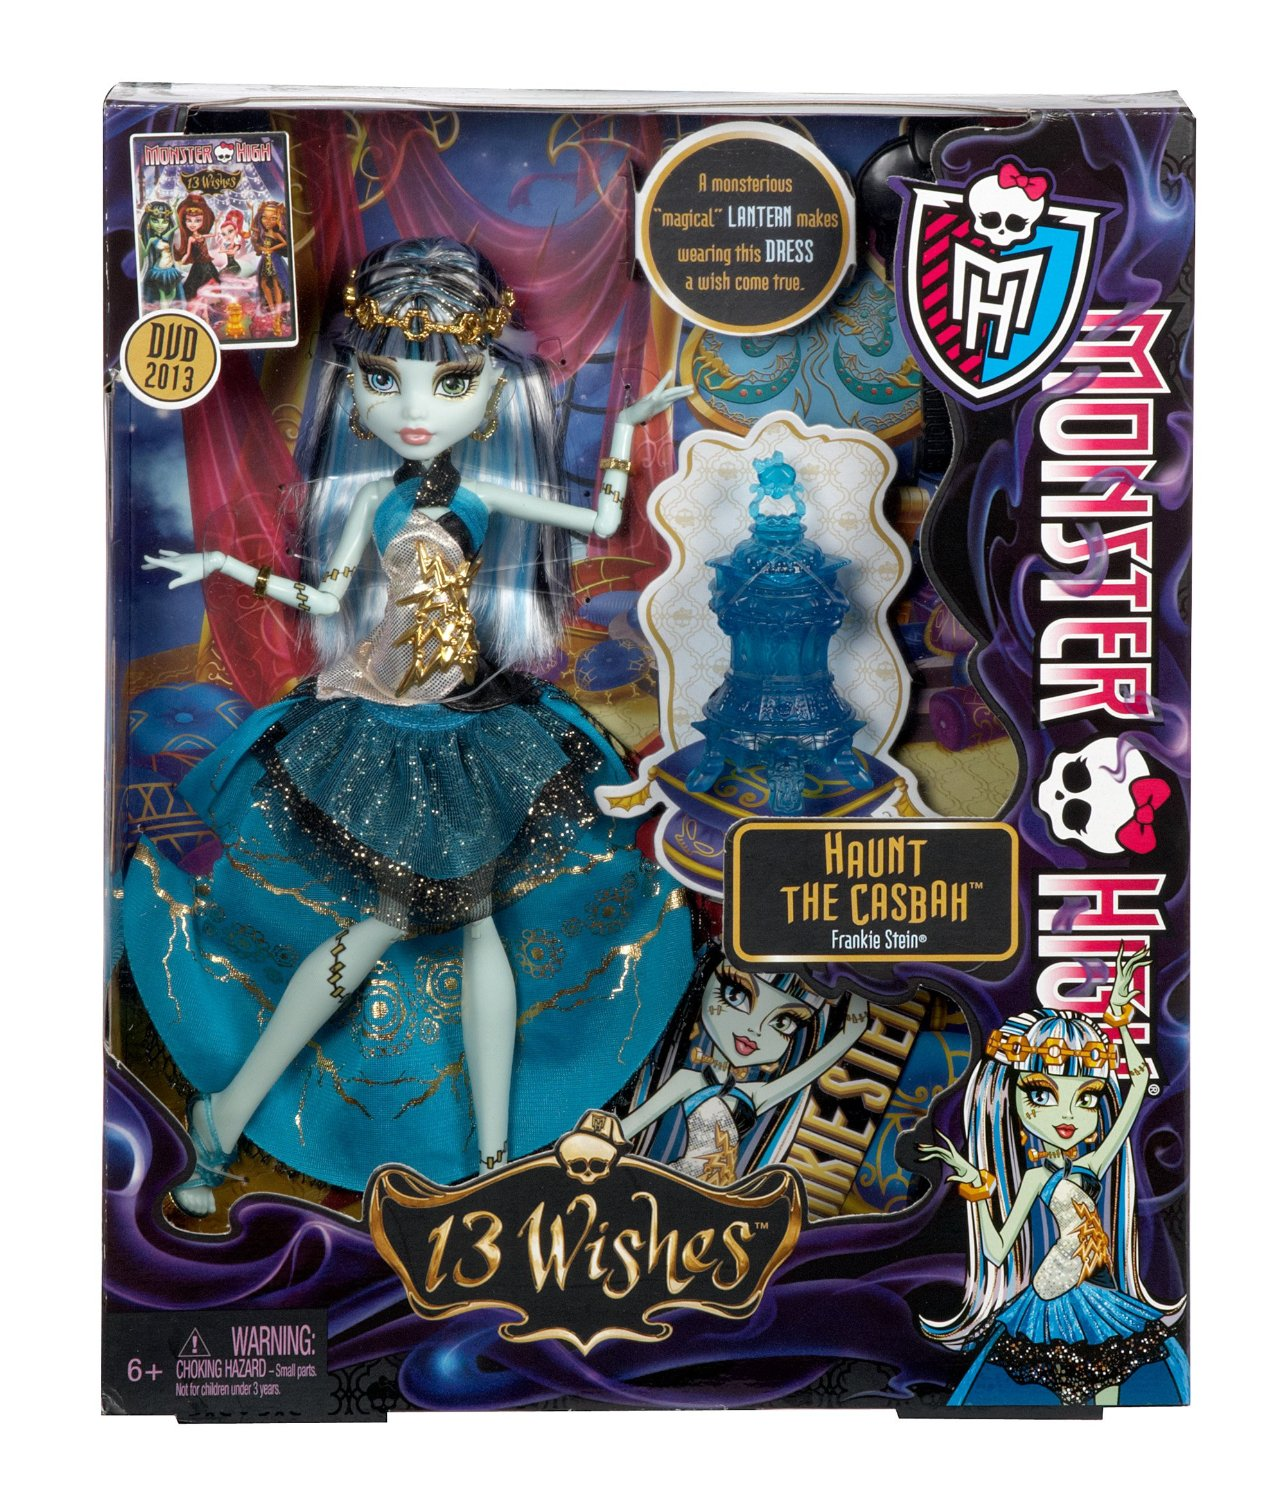 Monster High - 13 deseos: muñeca Frankie